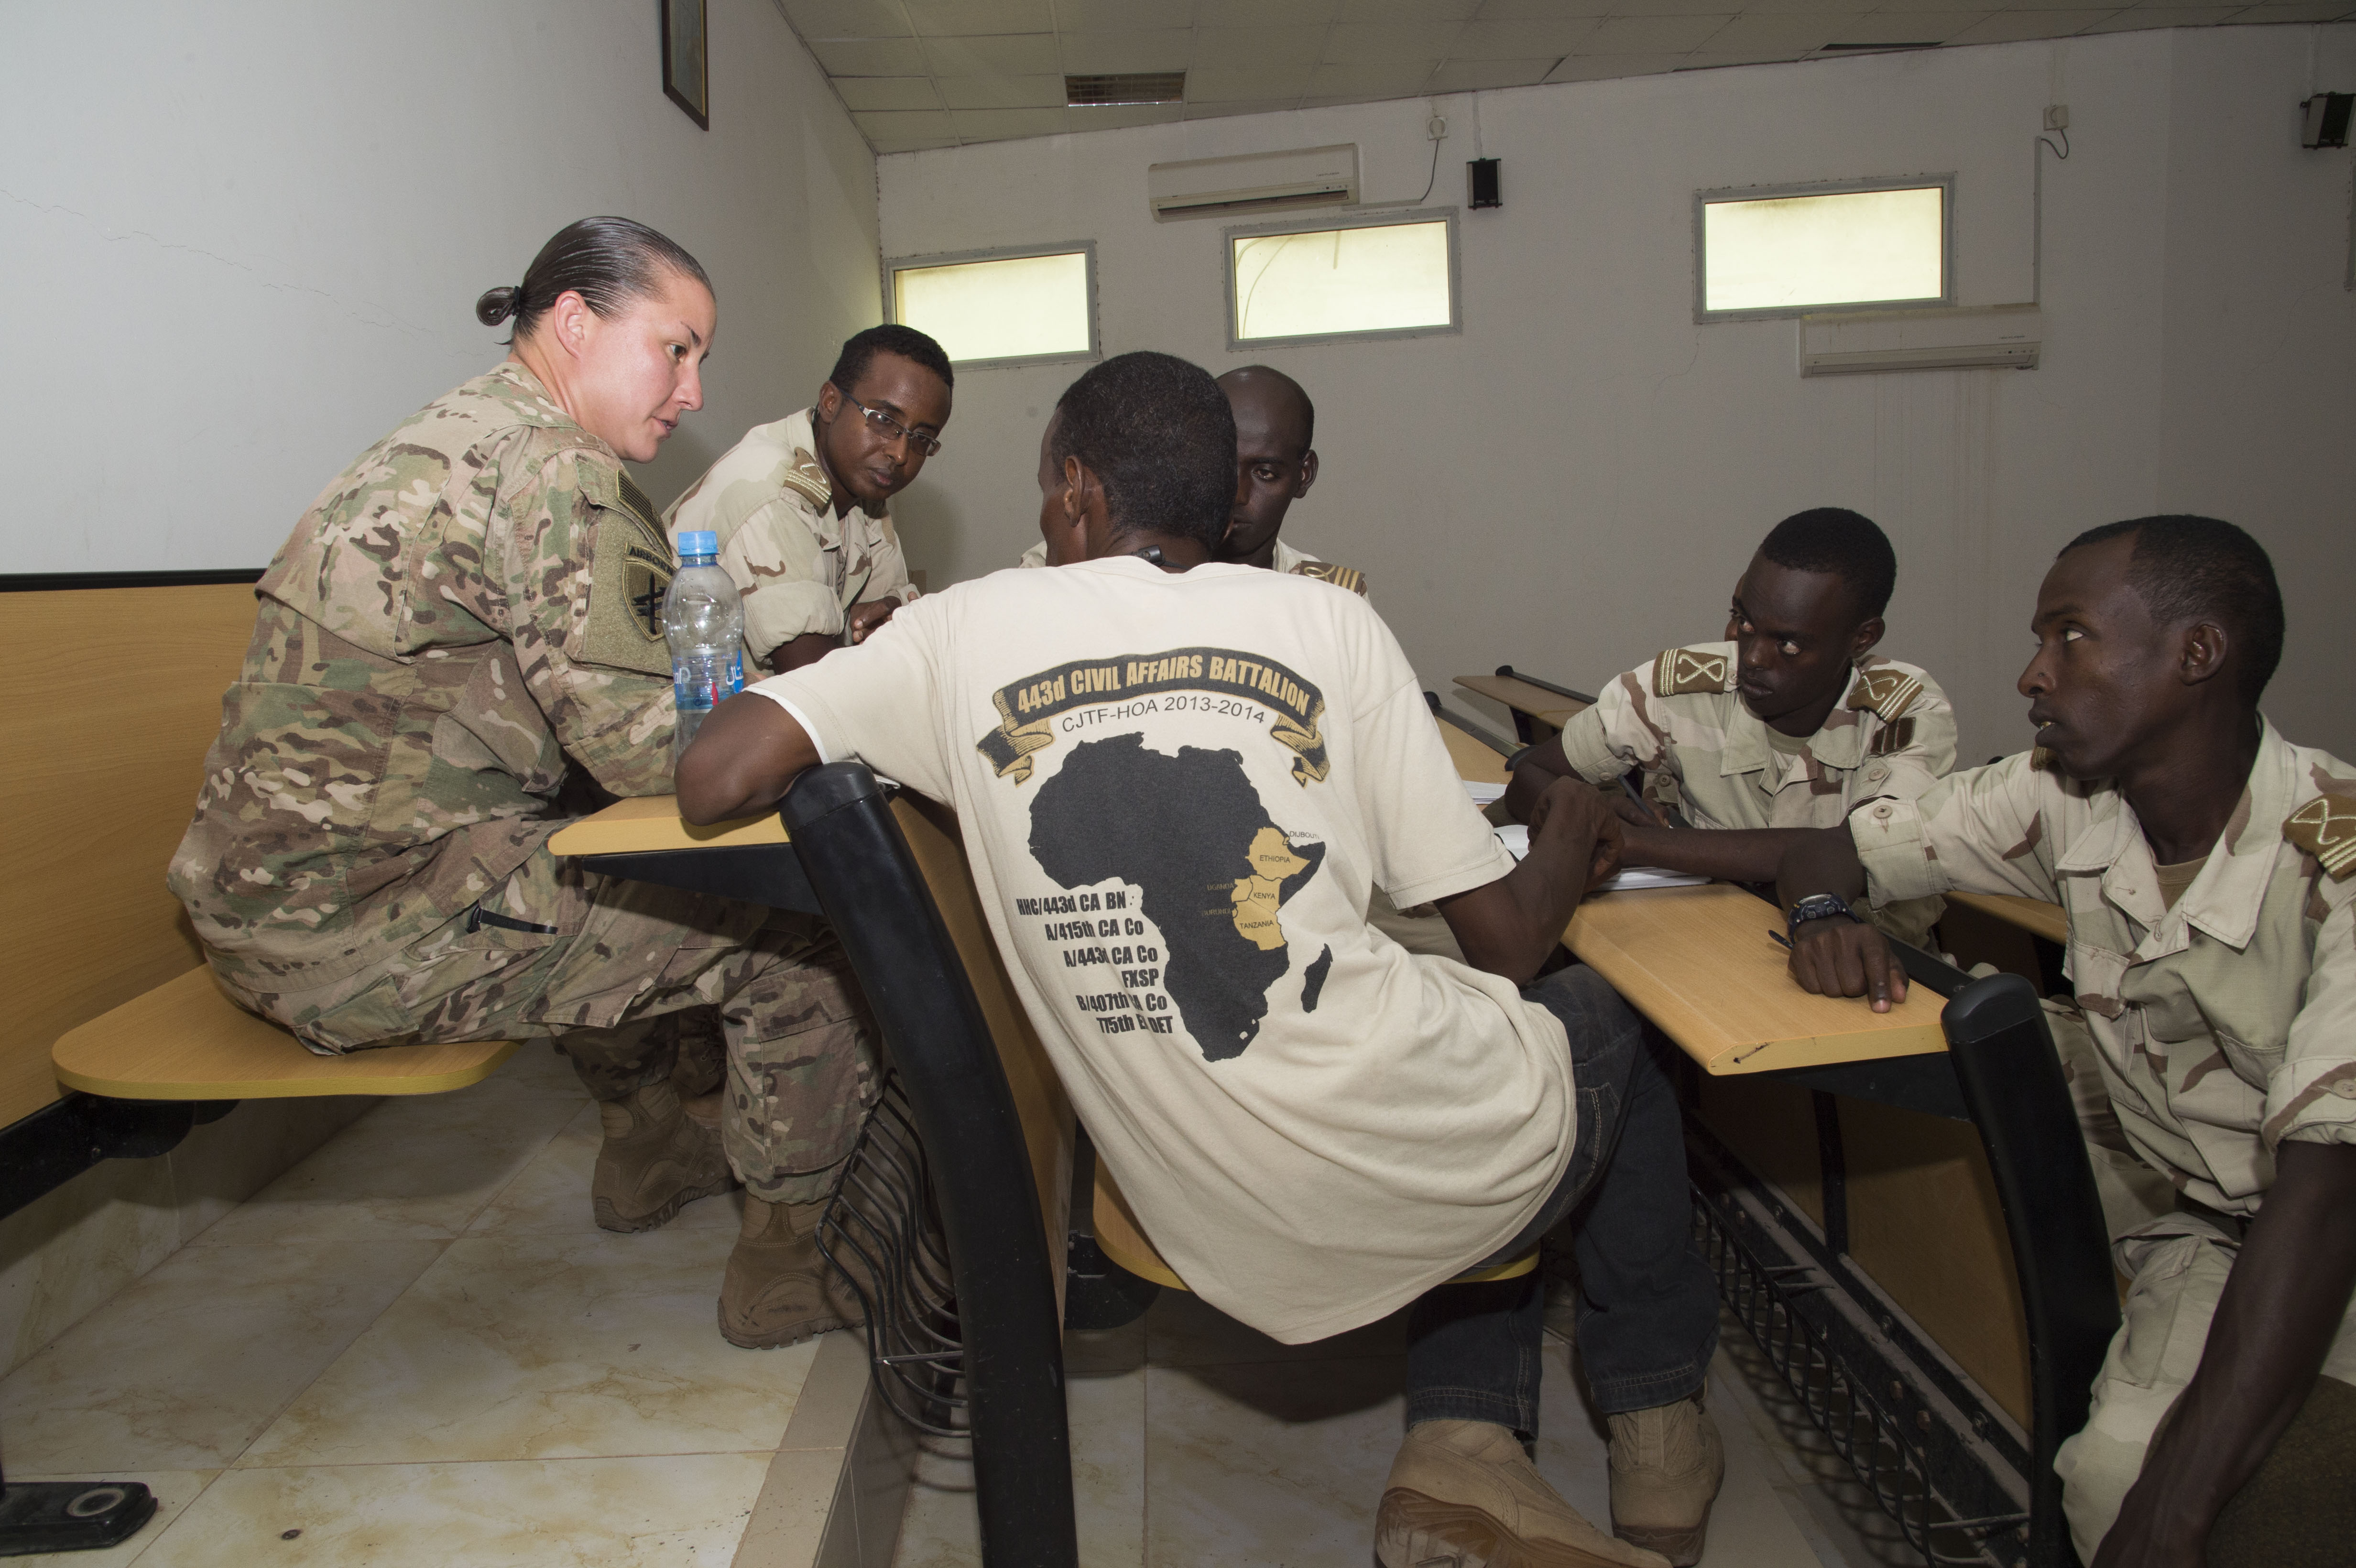 Sgt. 1st Class Cynthia Price, 403rd Civil Affairs instructor, provides feedback to Djibouti's Arta Interservices Military Academy cadets during Civil Military Cooperation training May 18, 2016, at Arta, Djibouti. The feedback educated the cadets on their strengths and weaknesses during training scenarios to better prepare them for the next task. (U.S. Air Force photo by Staff Sgt. Eric Summers Jr.)